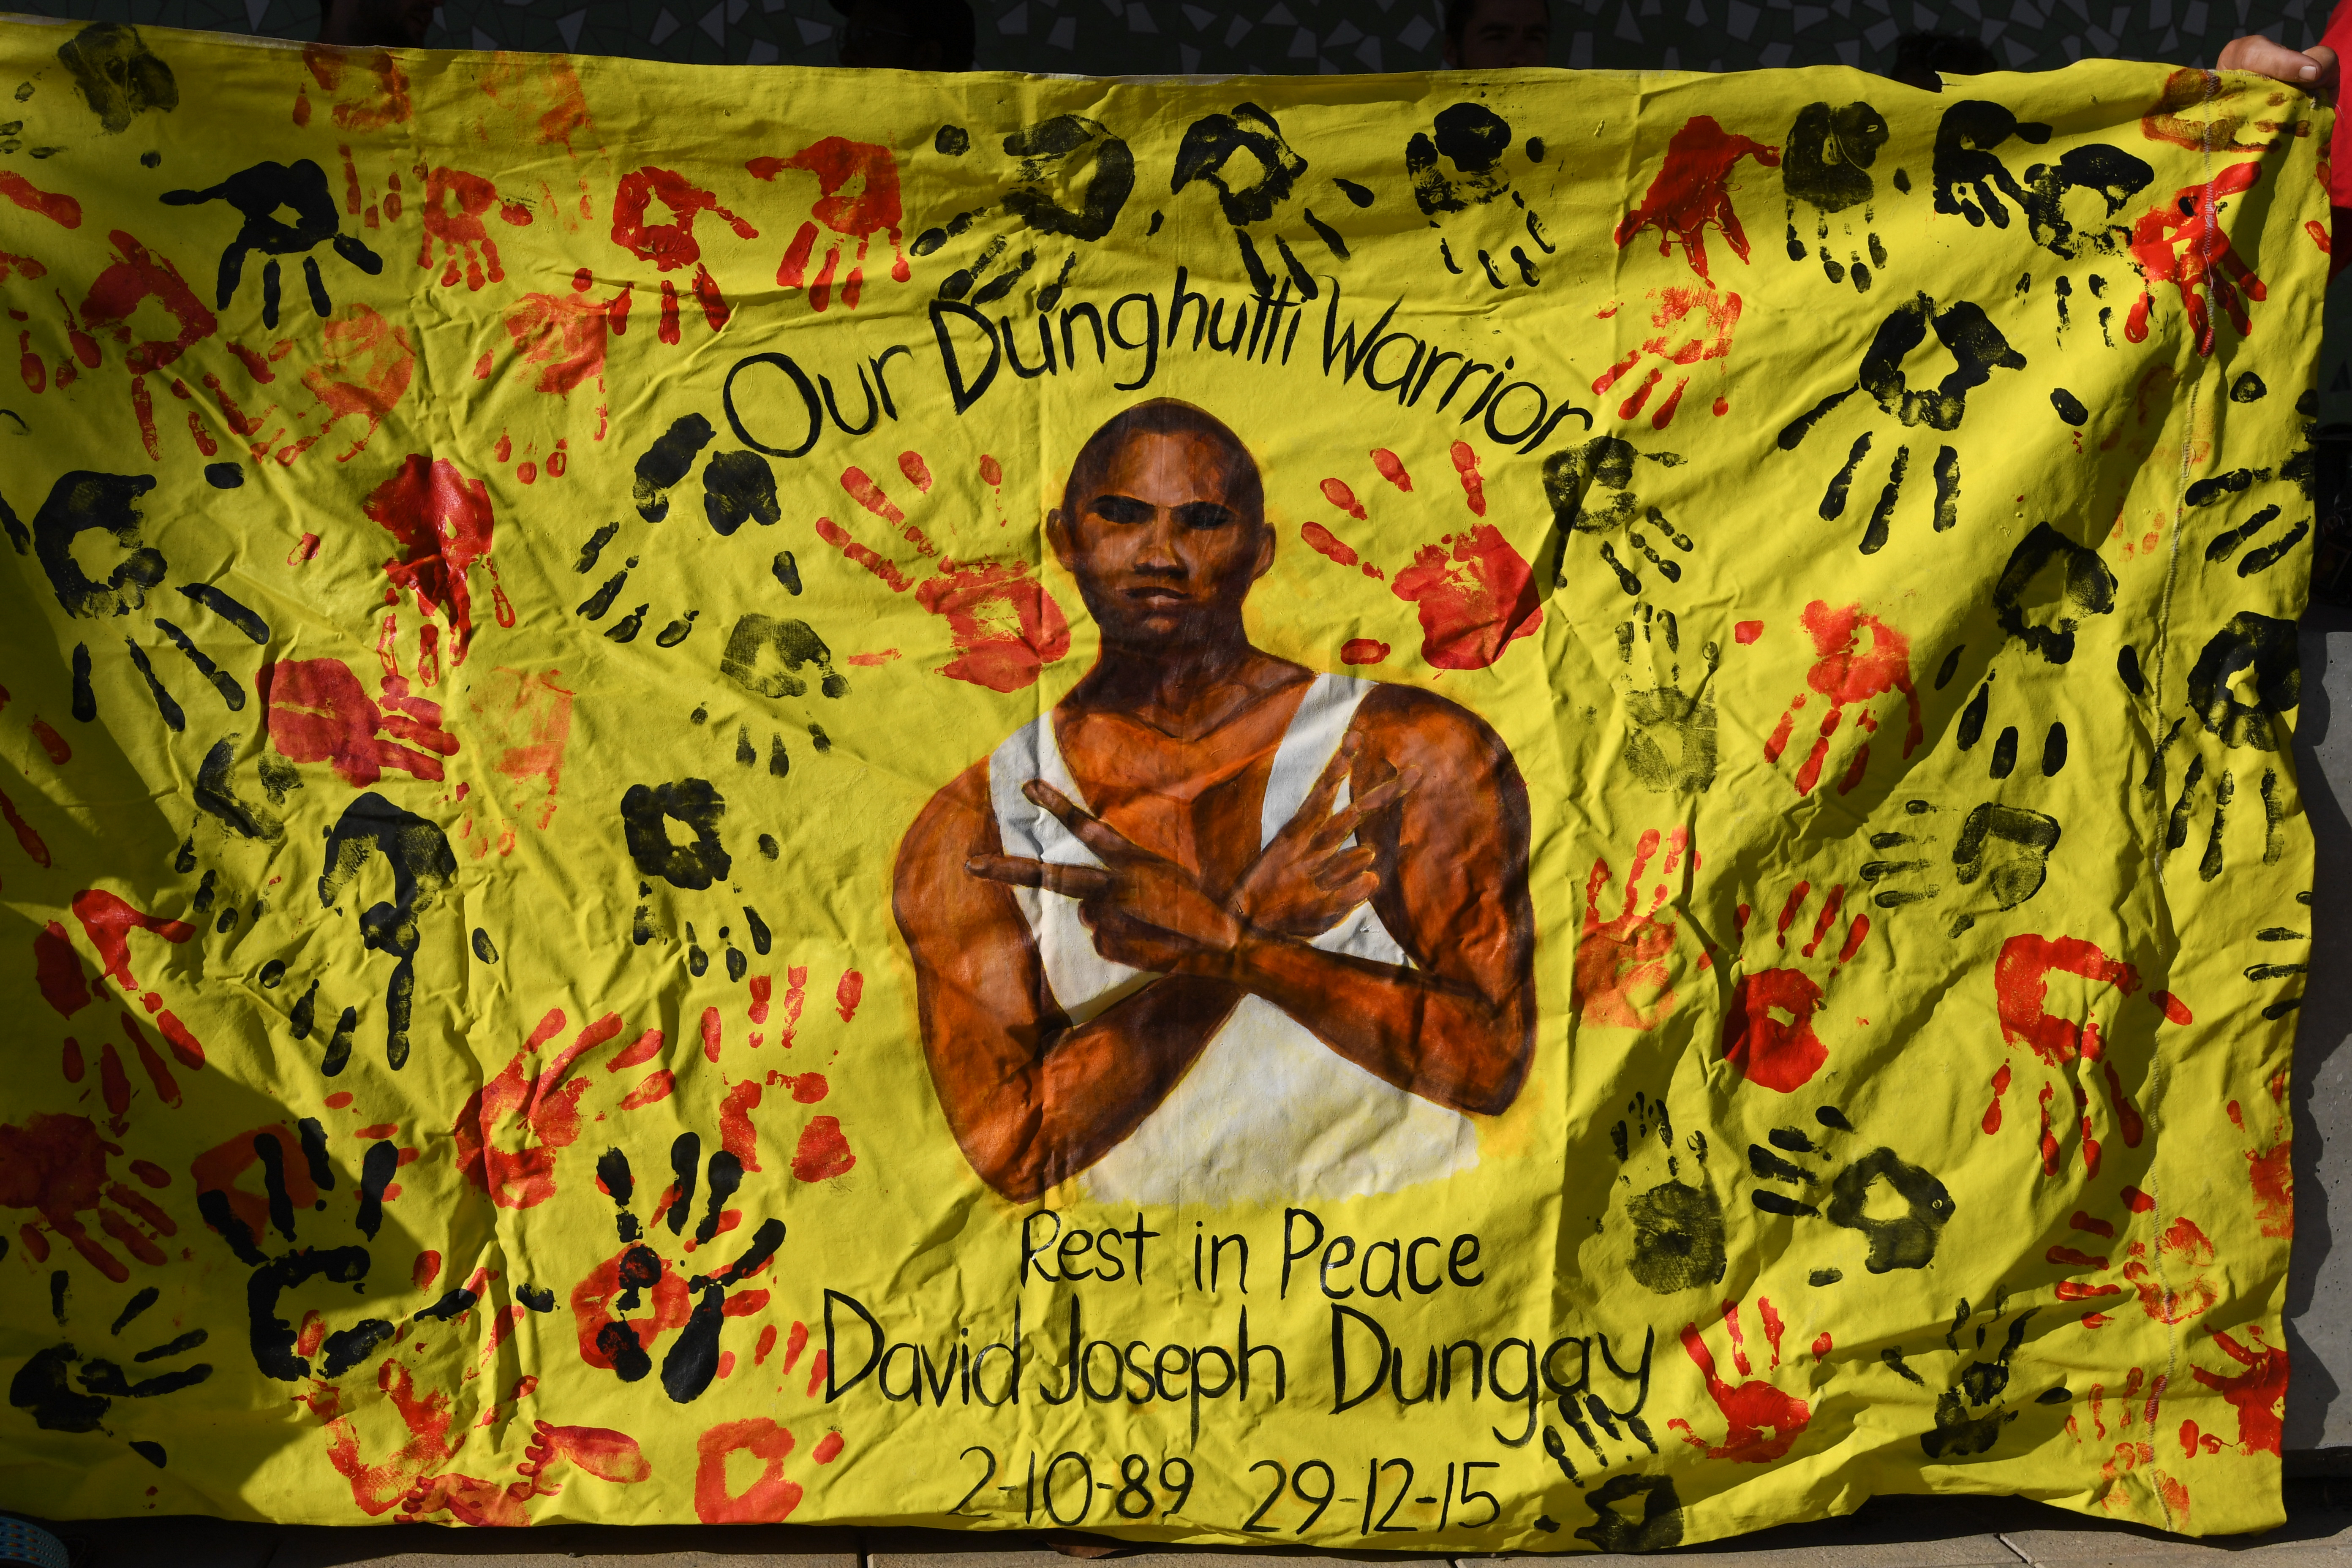 Officers have been cleared of wrongdoing in the death in custody of David Dungay.